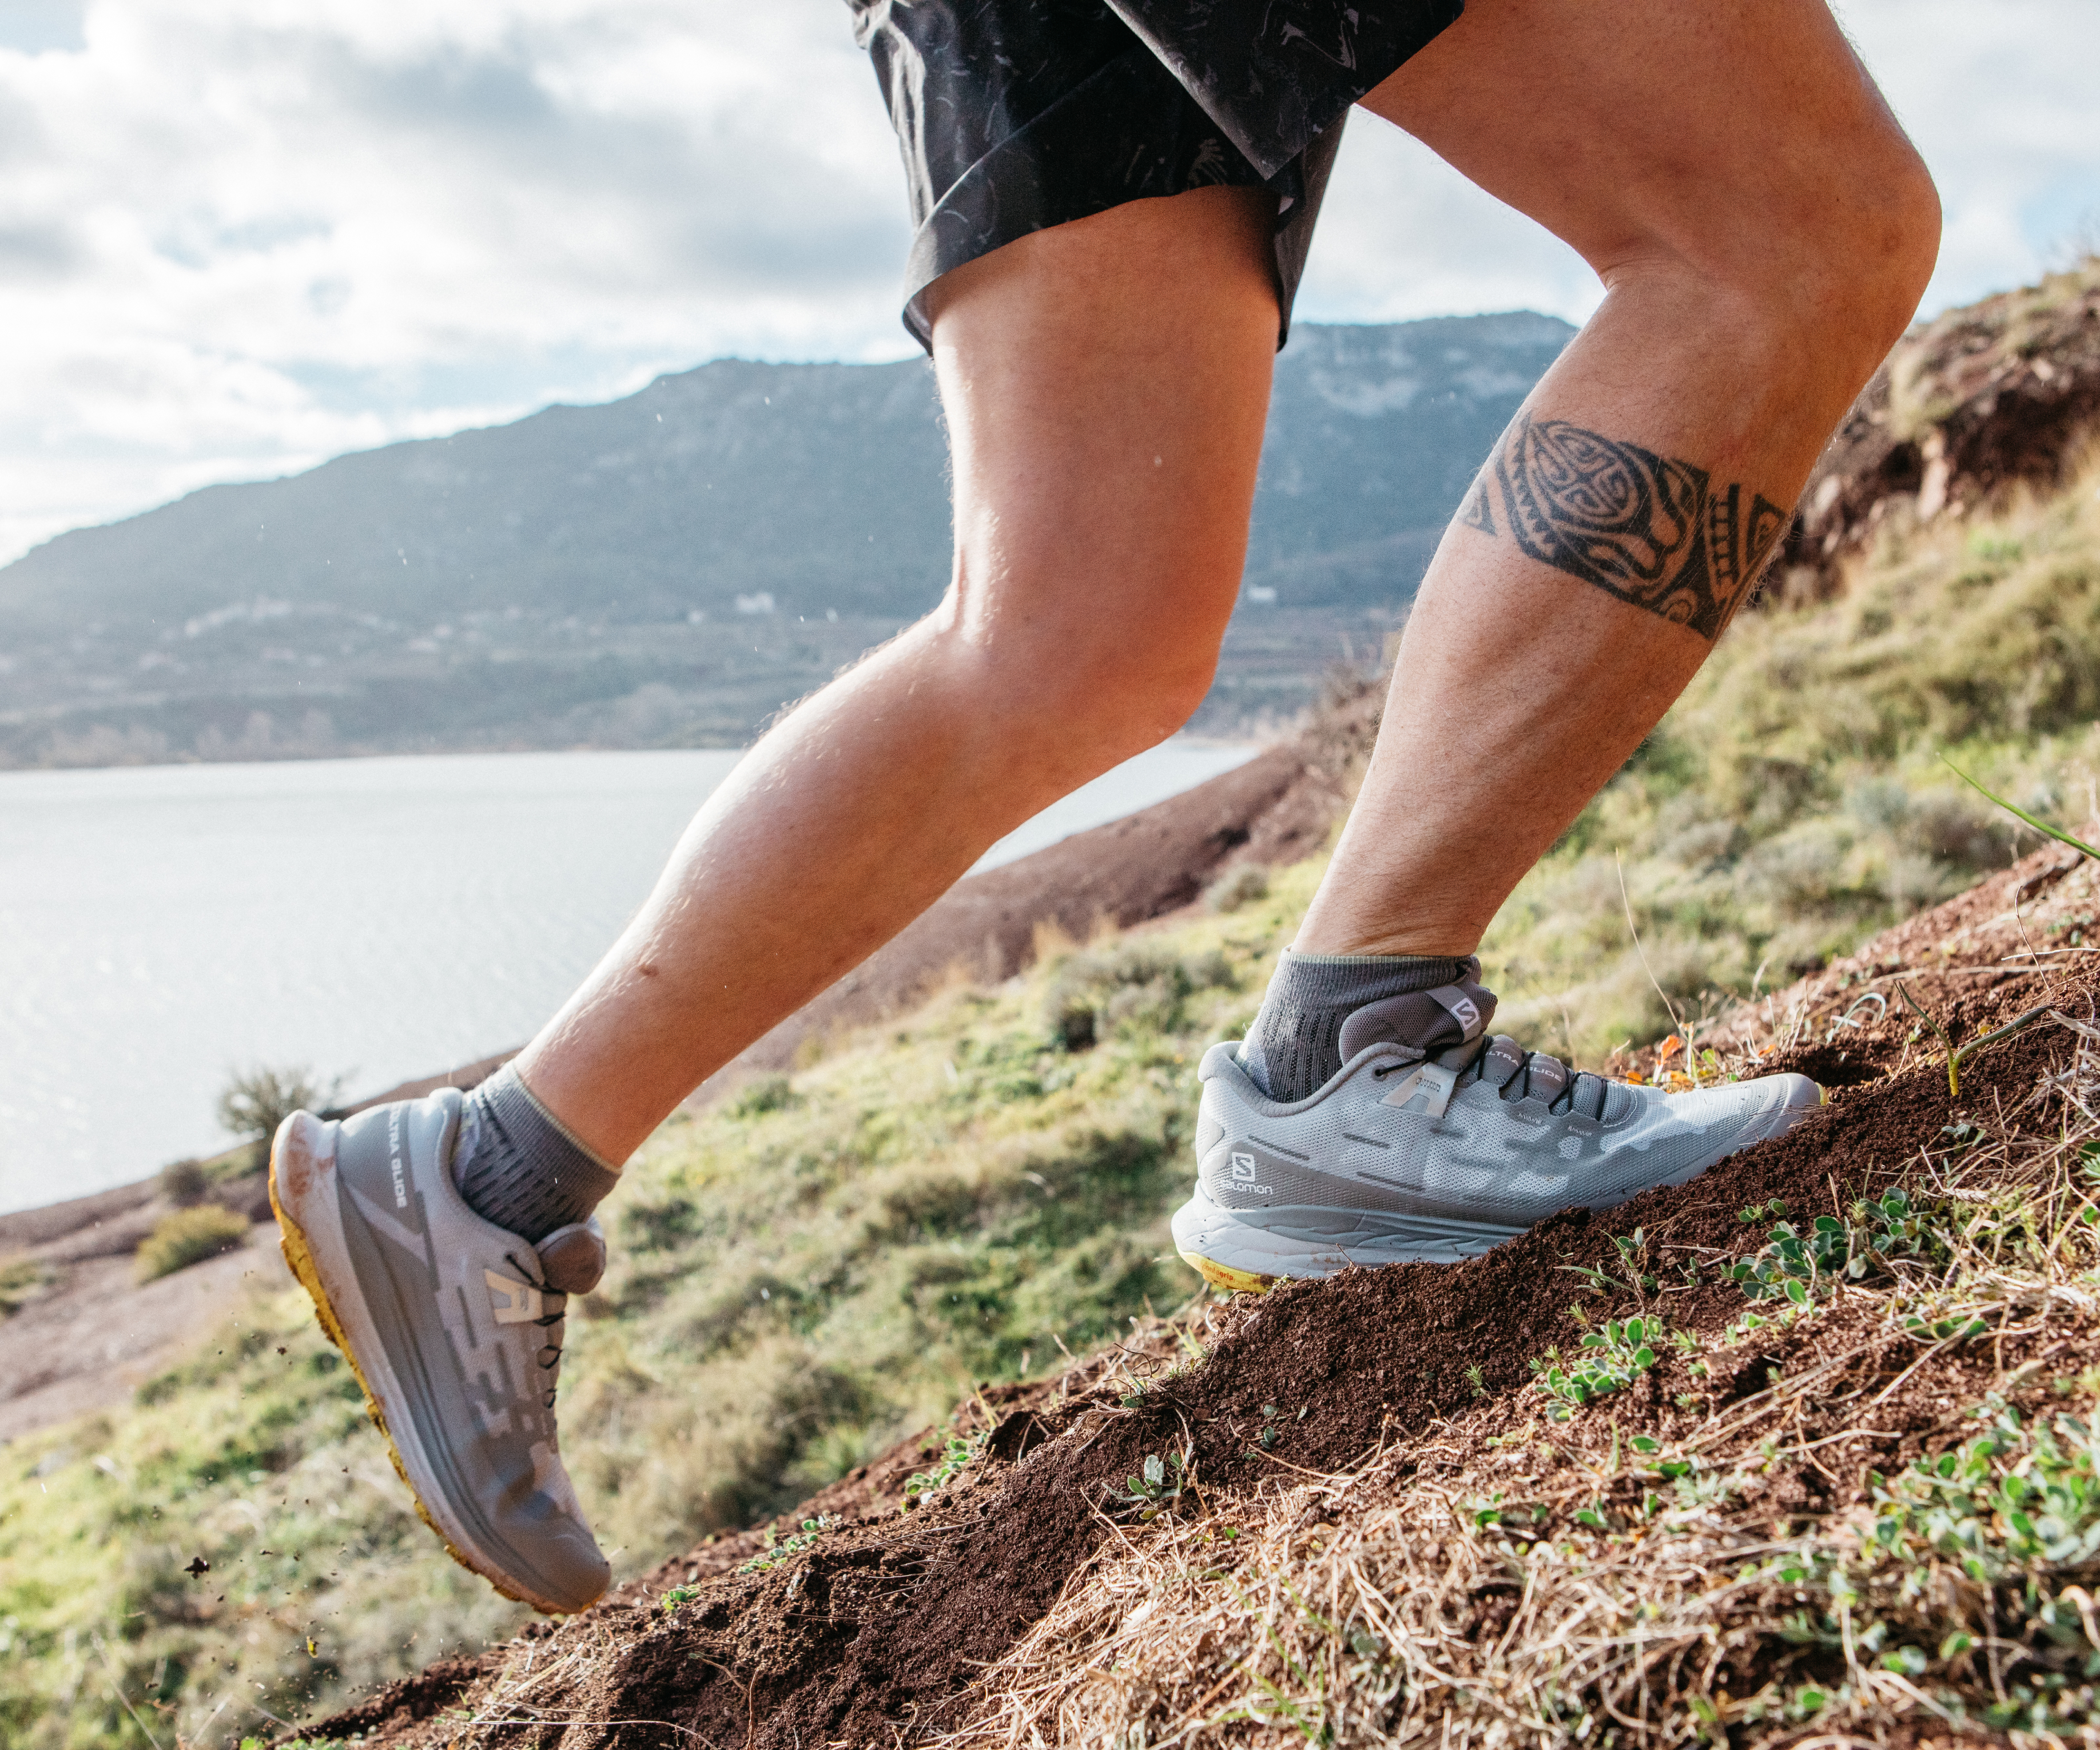 What makes a comfortable running shoe?